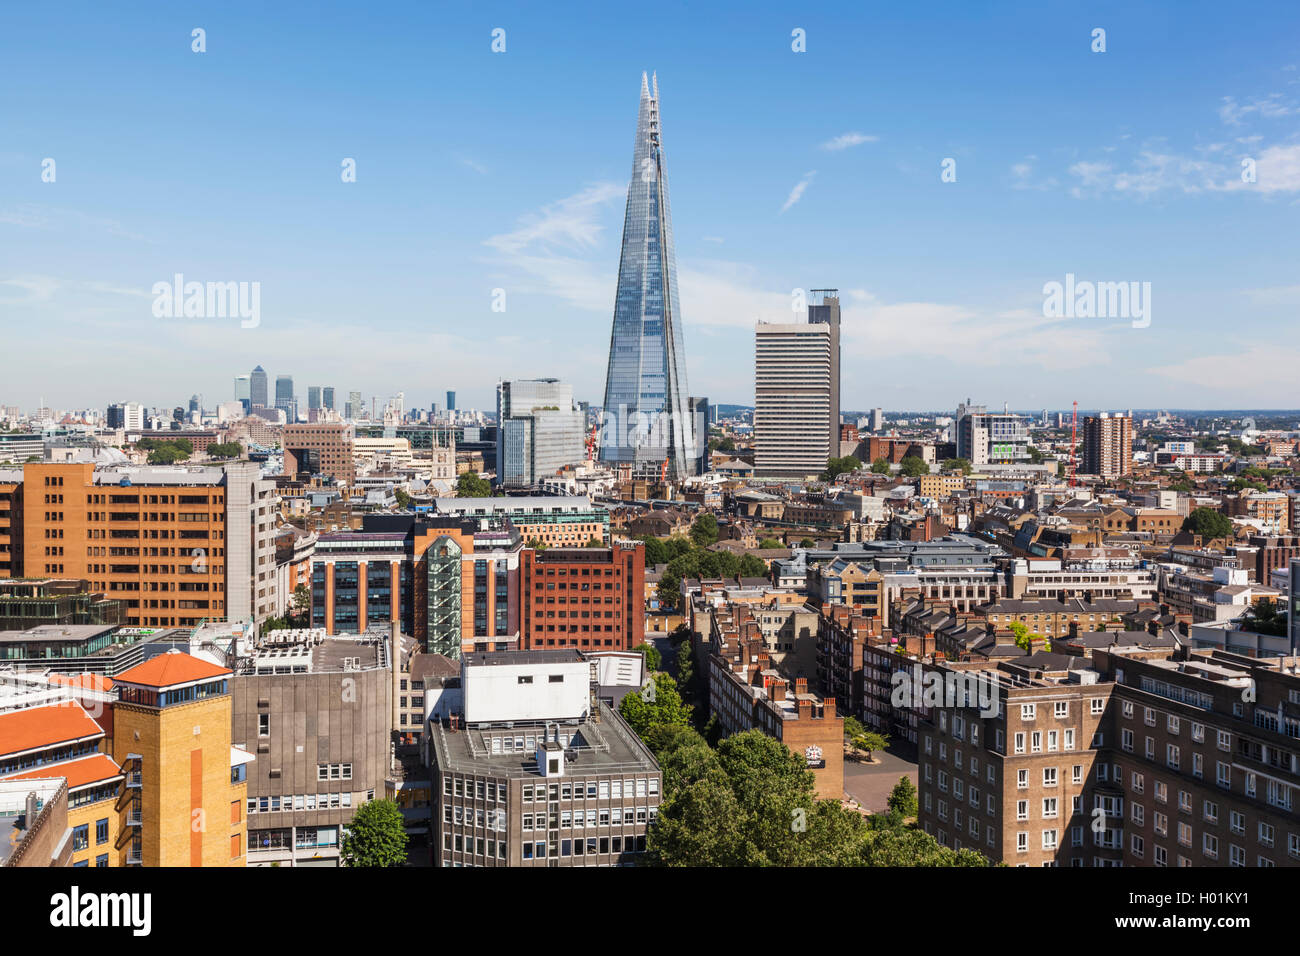 England, London, View of Southwark and The Shard from Tate Modern - Stock Image